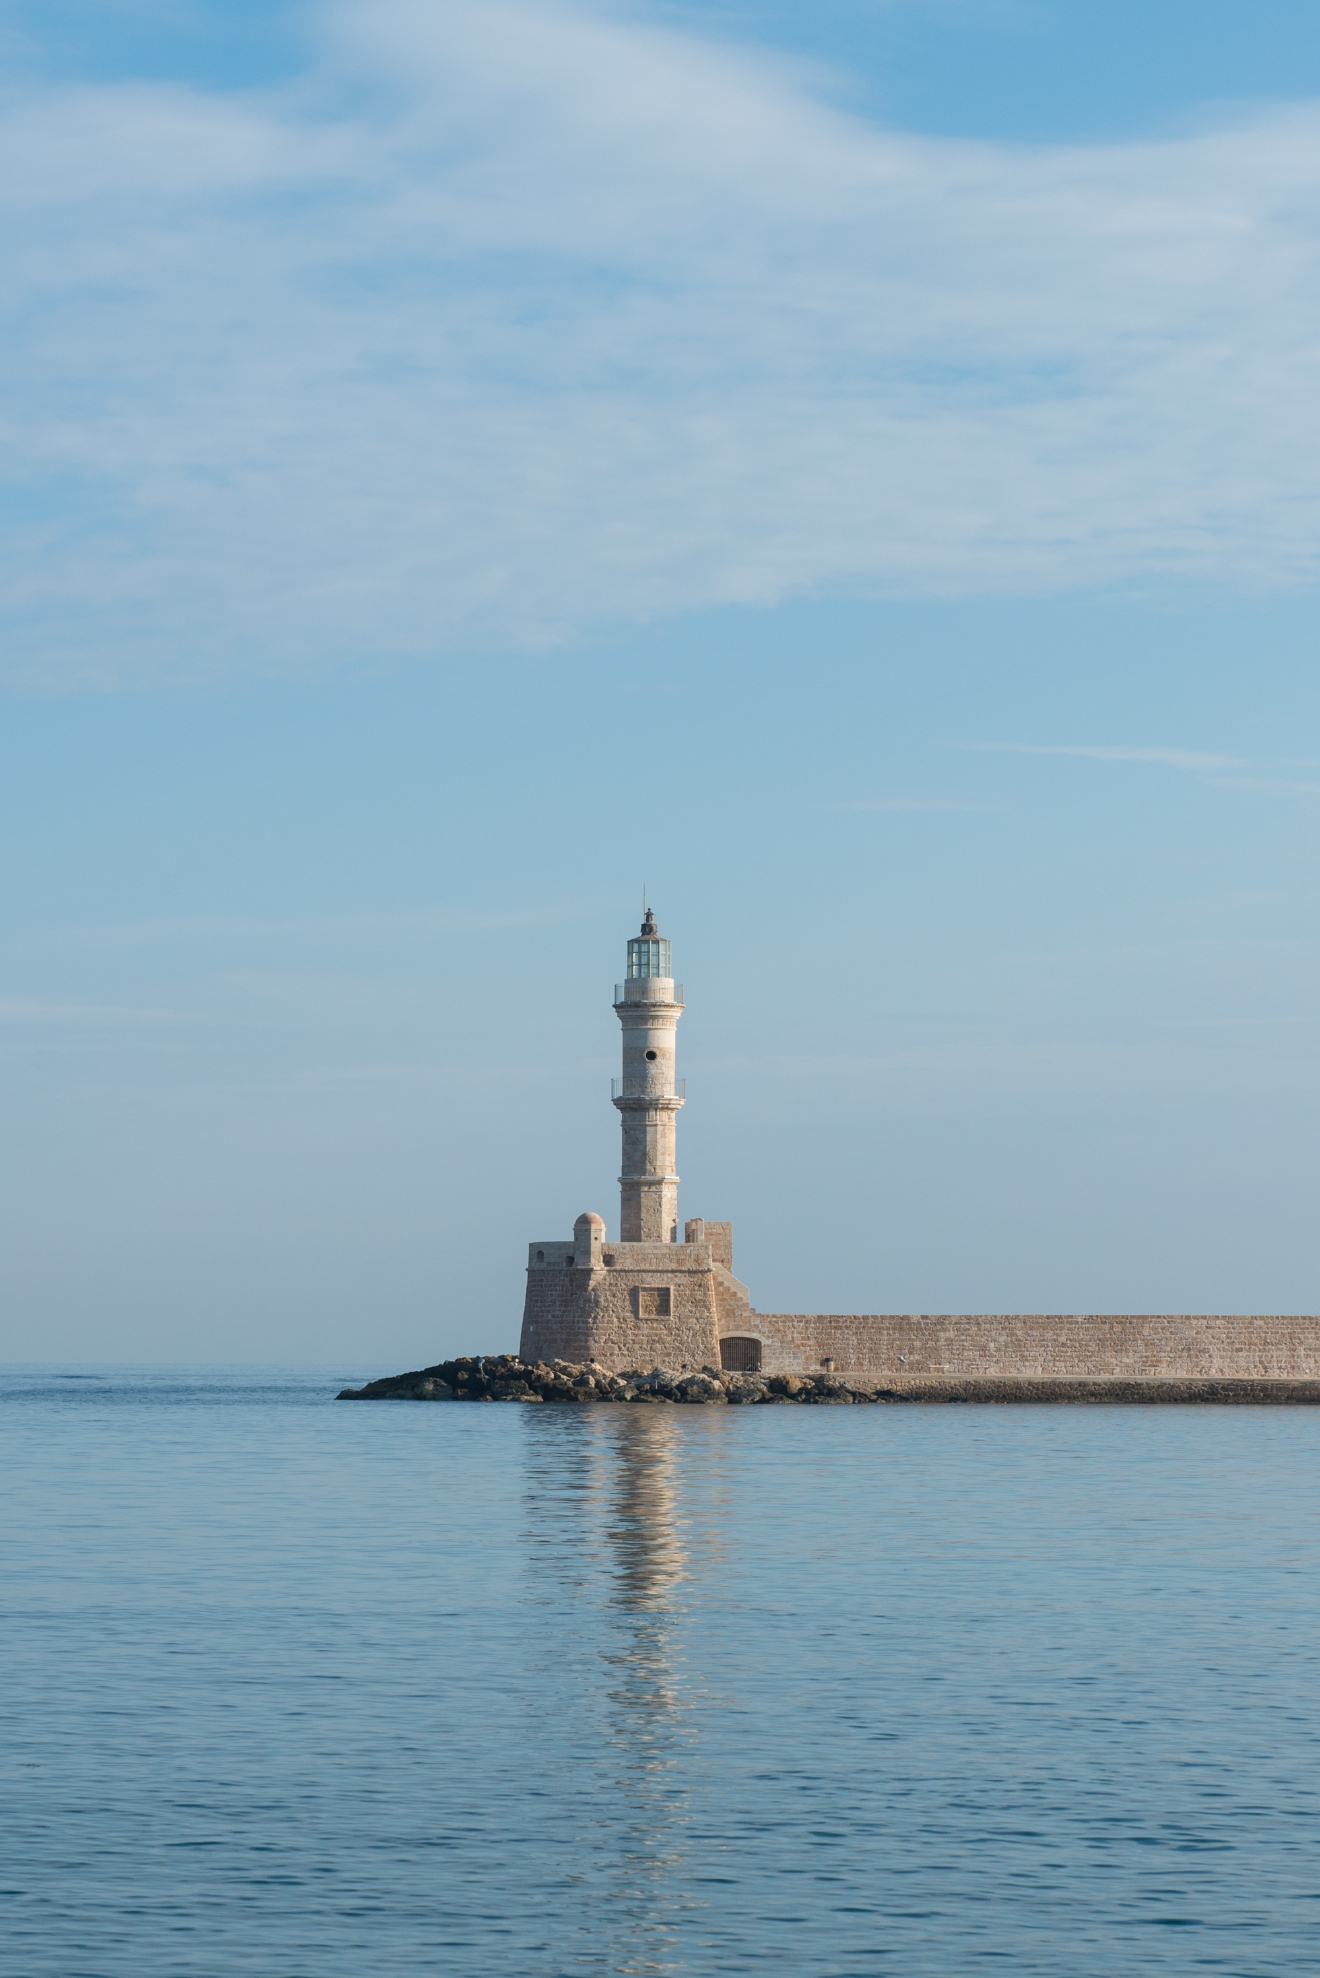 The lighthouse along the water in Chania.  Seattle Refined writer and photographer Chona Kasinger spent the better part of a week in Crete,  an island of truly unparalleled beauty. From the pink sands of Elafonisi Beach to the rocky paths of Samaria Gorge and Venetian harbor of Chania, here's a look at 54 totally not photoshopped photos of Crete in all its Grecian glory. (Image: Chona Kasinger / Seattle Refined)